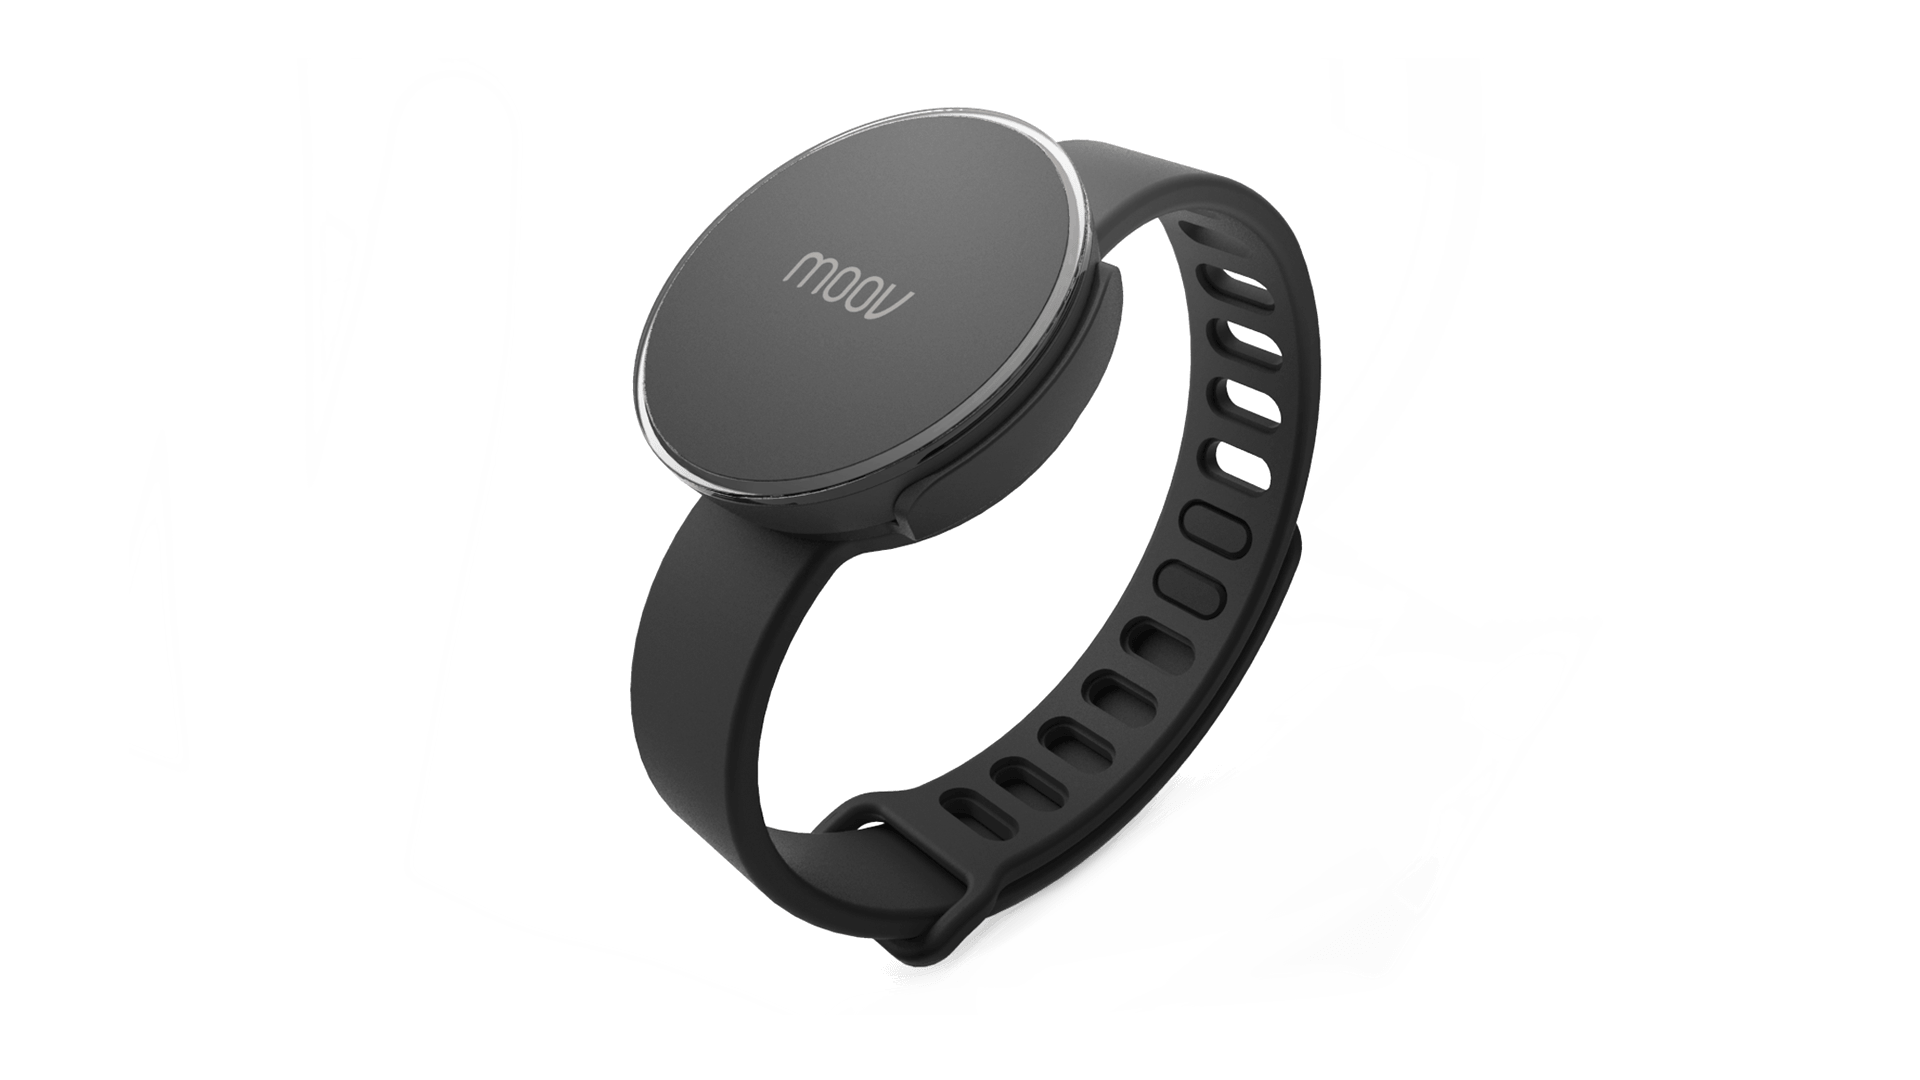 Exercise tracking device manager